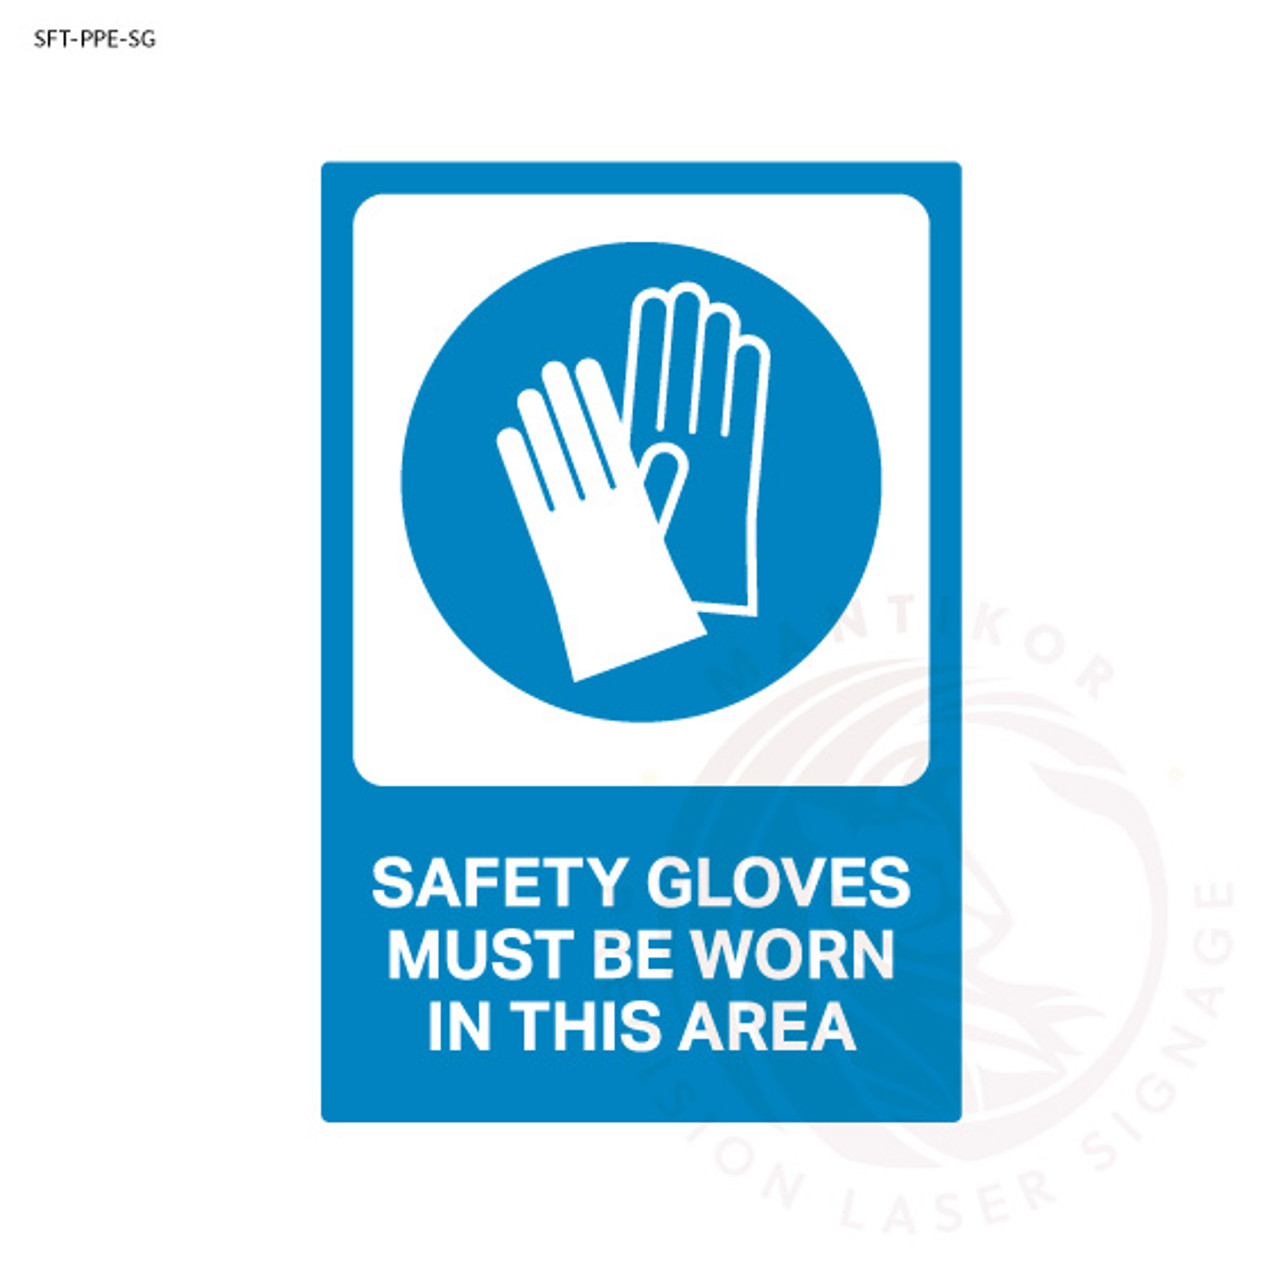 PPE Safety Signage - Safety gloves must be worn in this area